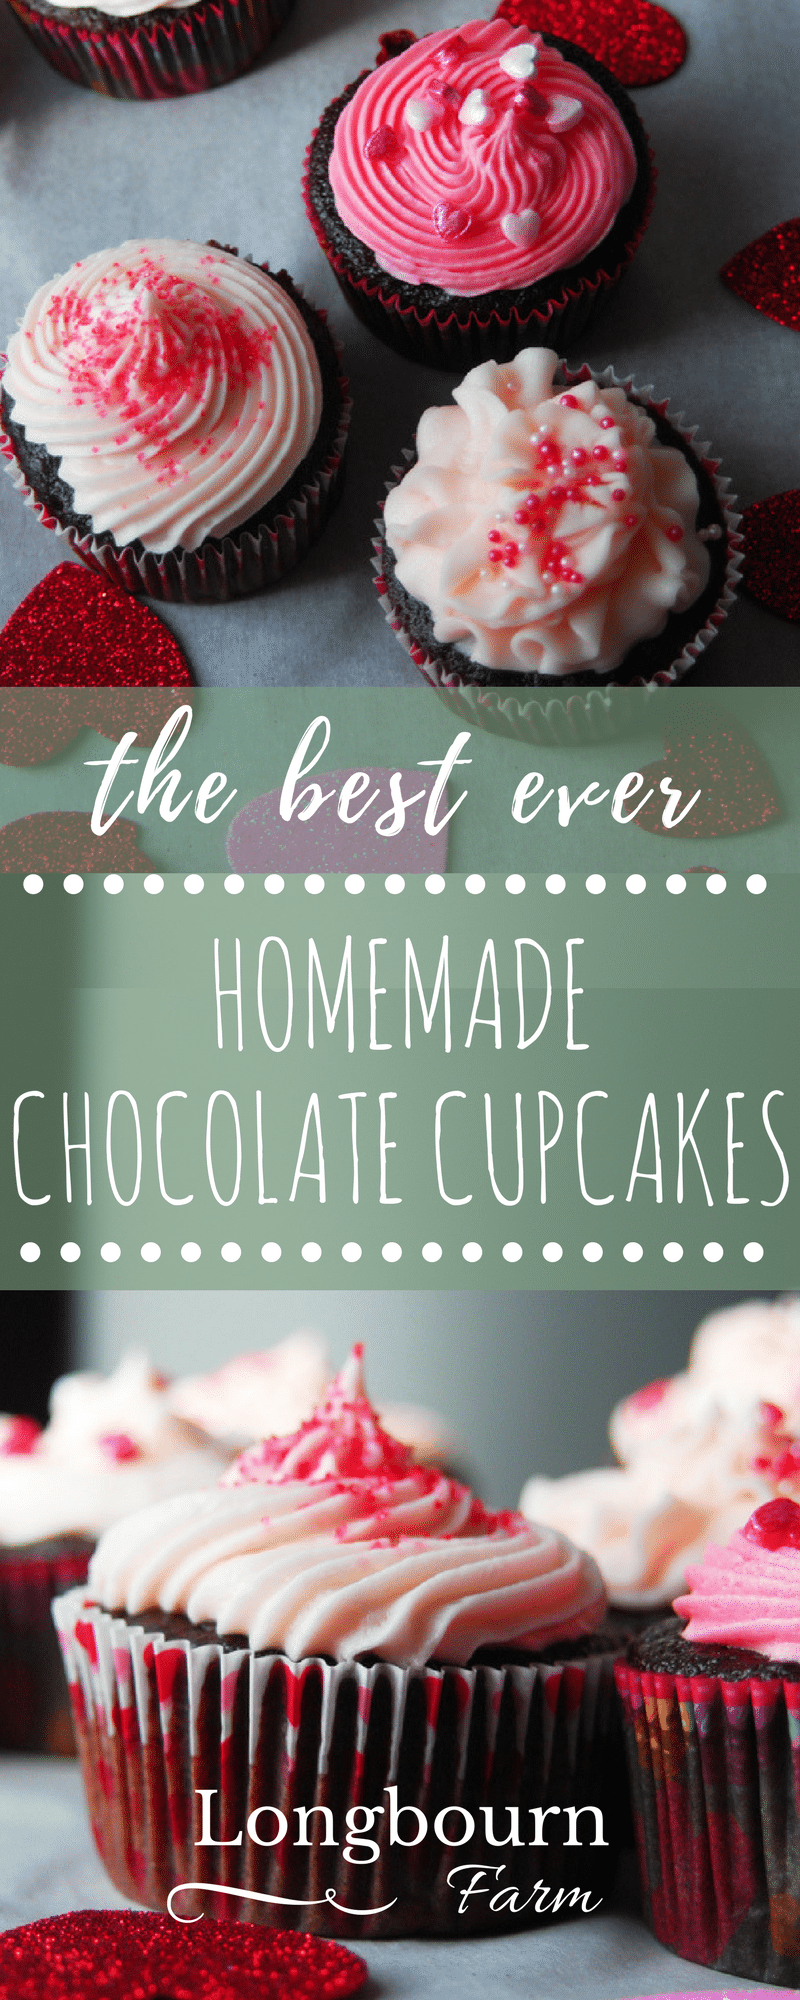 Best ever homemade chocolate cupcakes with whipped vanilla buttercream. Perfectly moist and fluffy, these cupcakes are a breeze to make and so delicious!